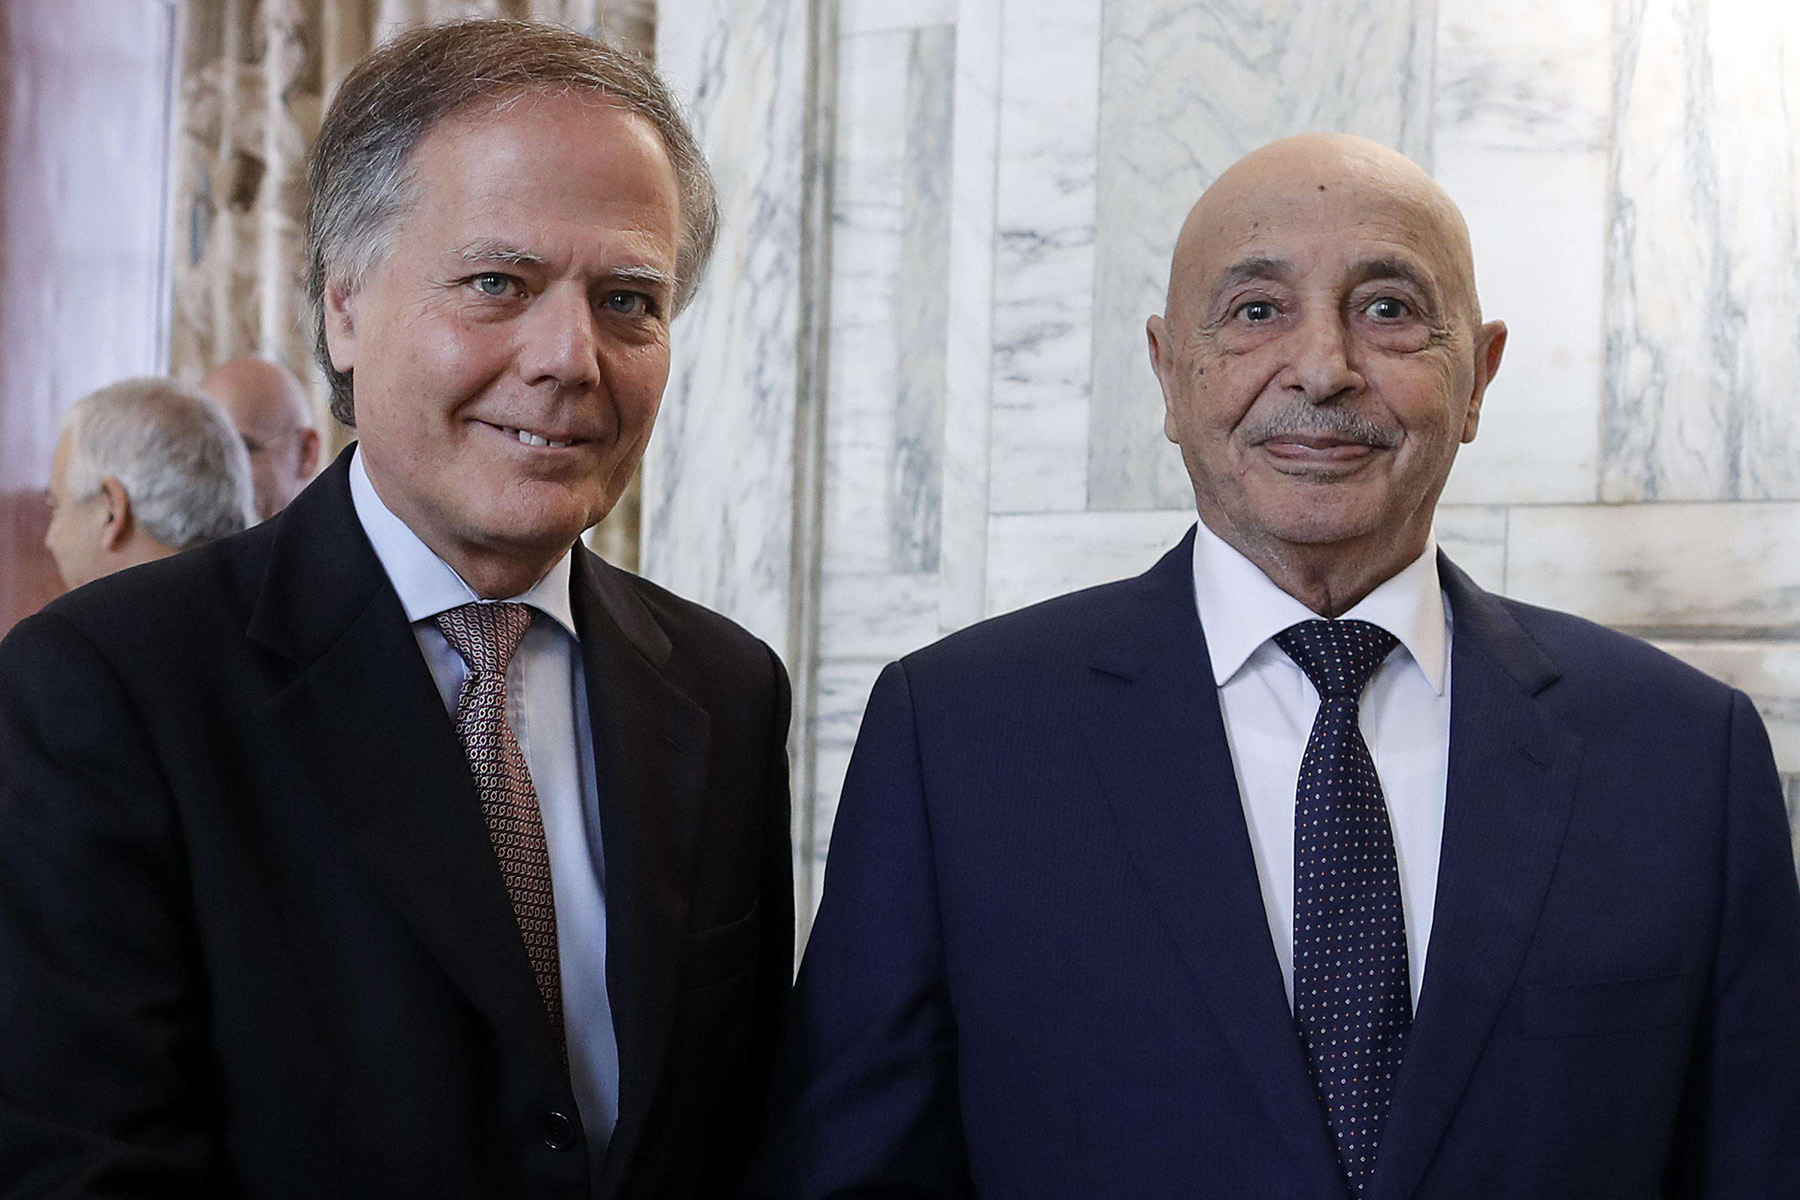 Italian Foreign Minister Enzo Moavero Milanesi (L) and President of the Libyan House of Representatives in Tobruk Ageela Saleh prior their meeting in Rome, on October 31. (AP)